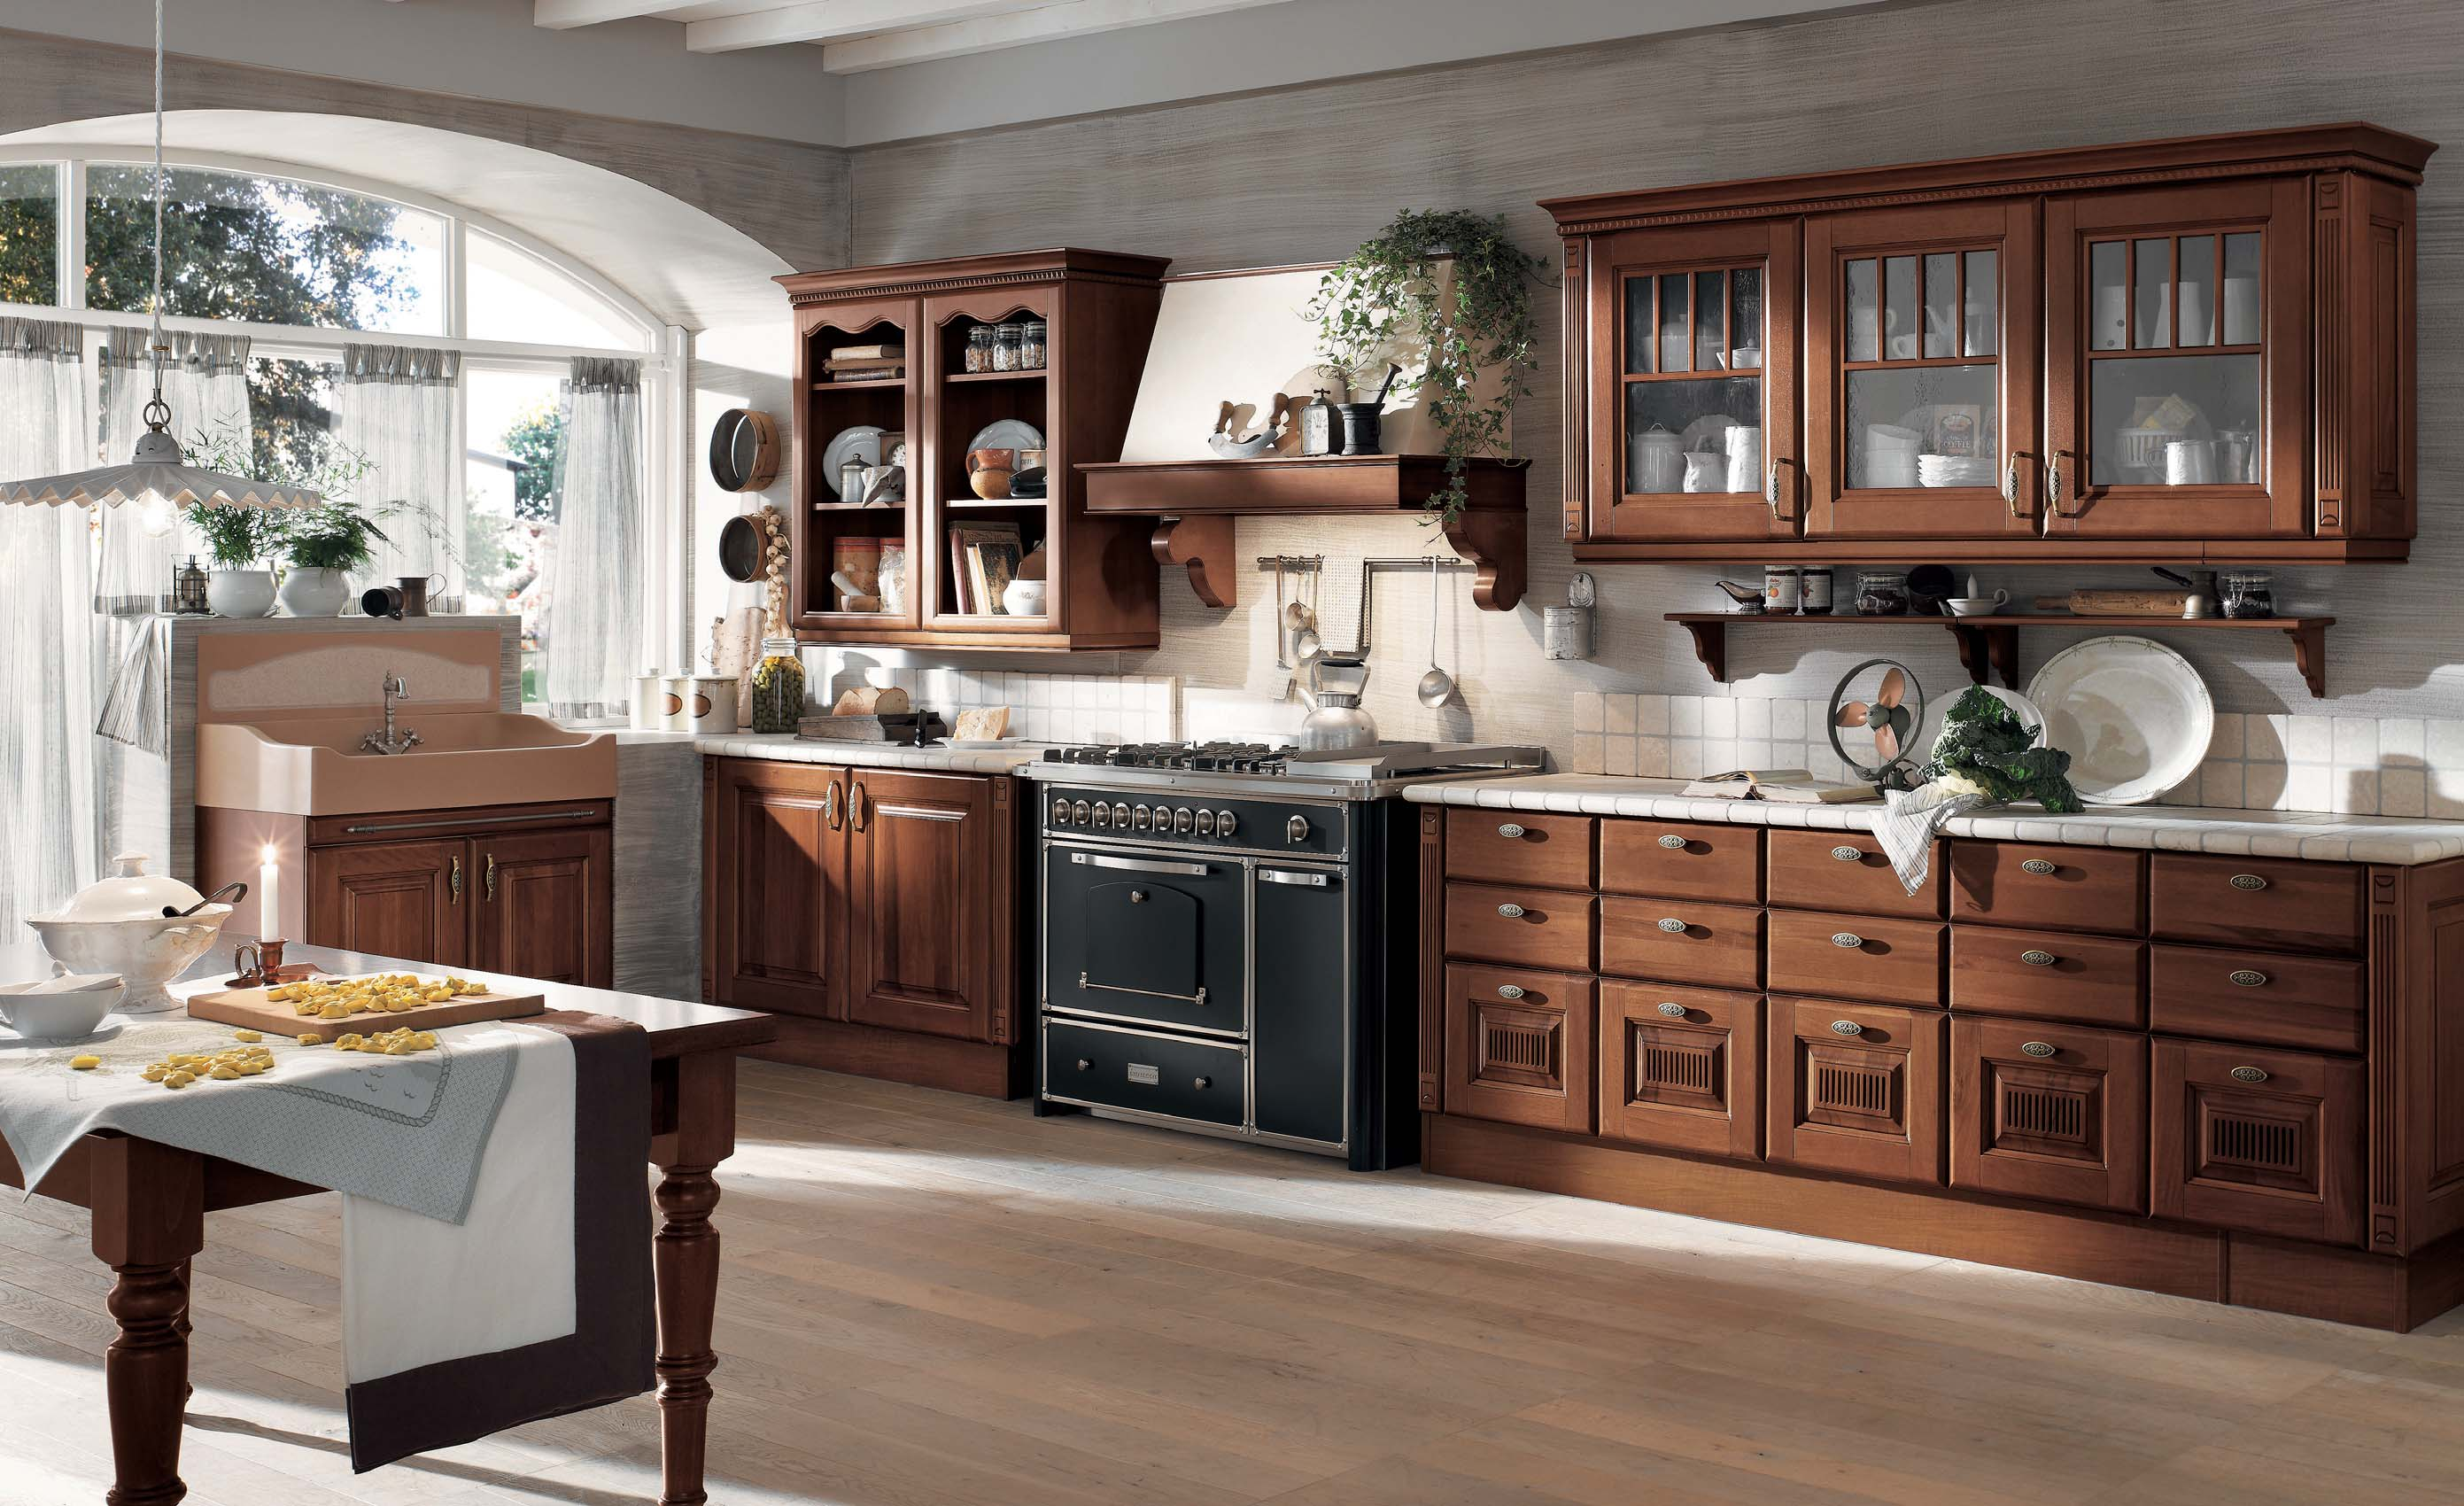 Feng Shui Tips for Kitchen | My Decorative on Kitchen Remodeling Ideas  id=66733